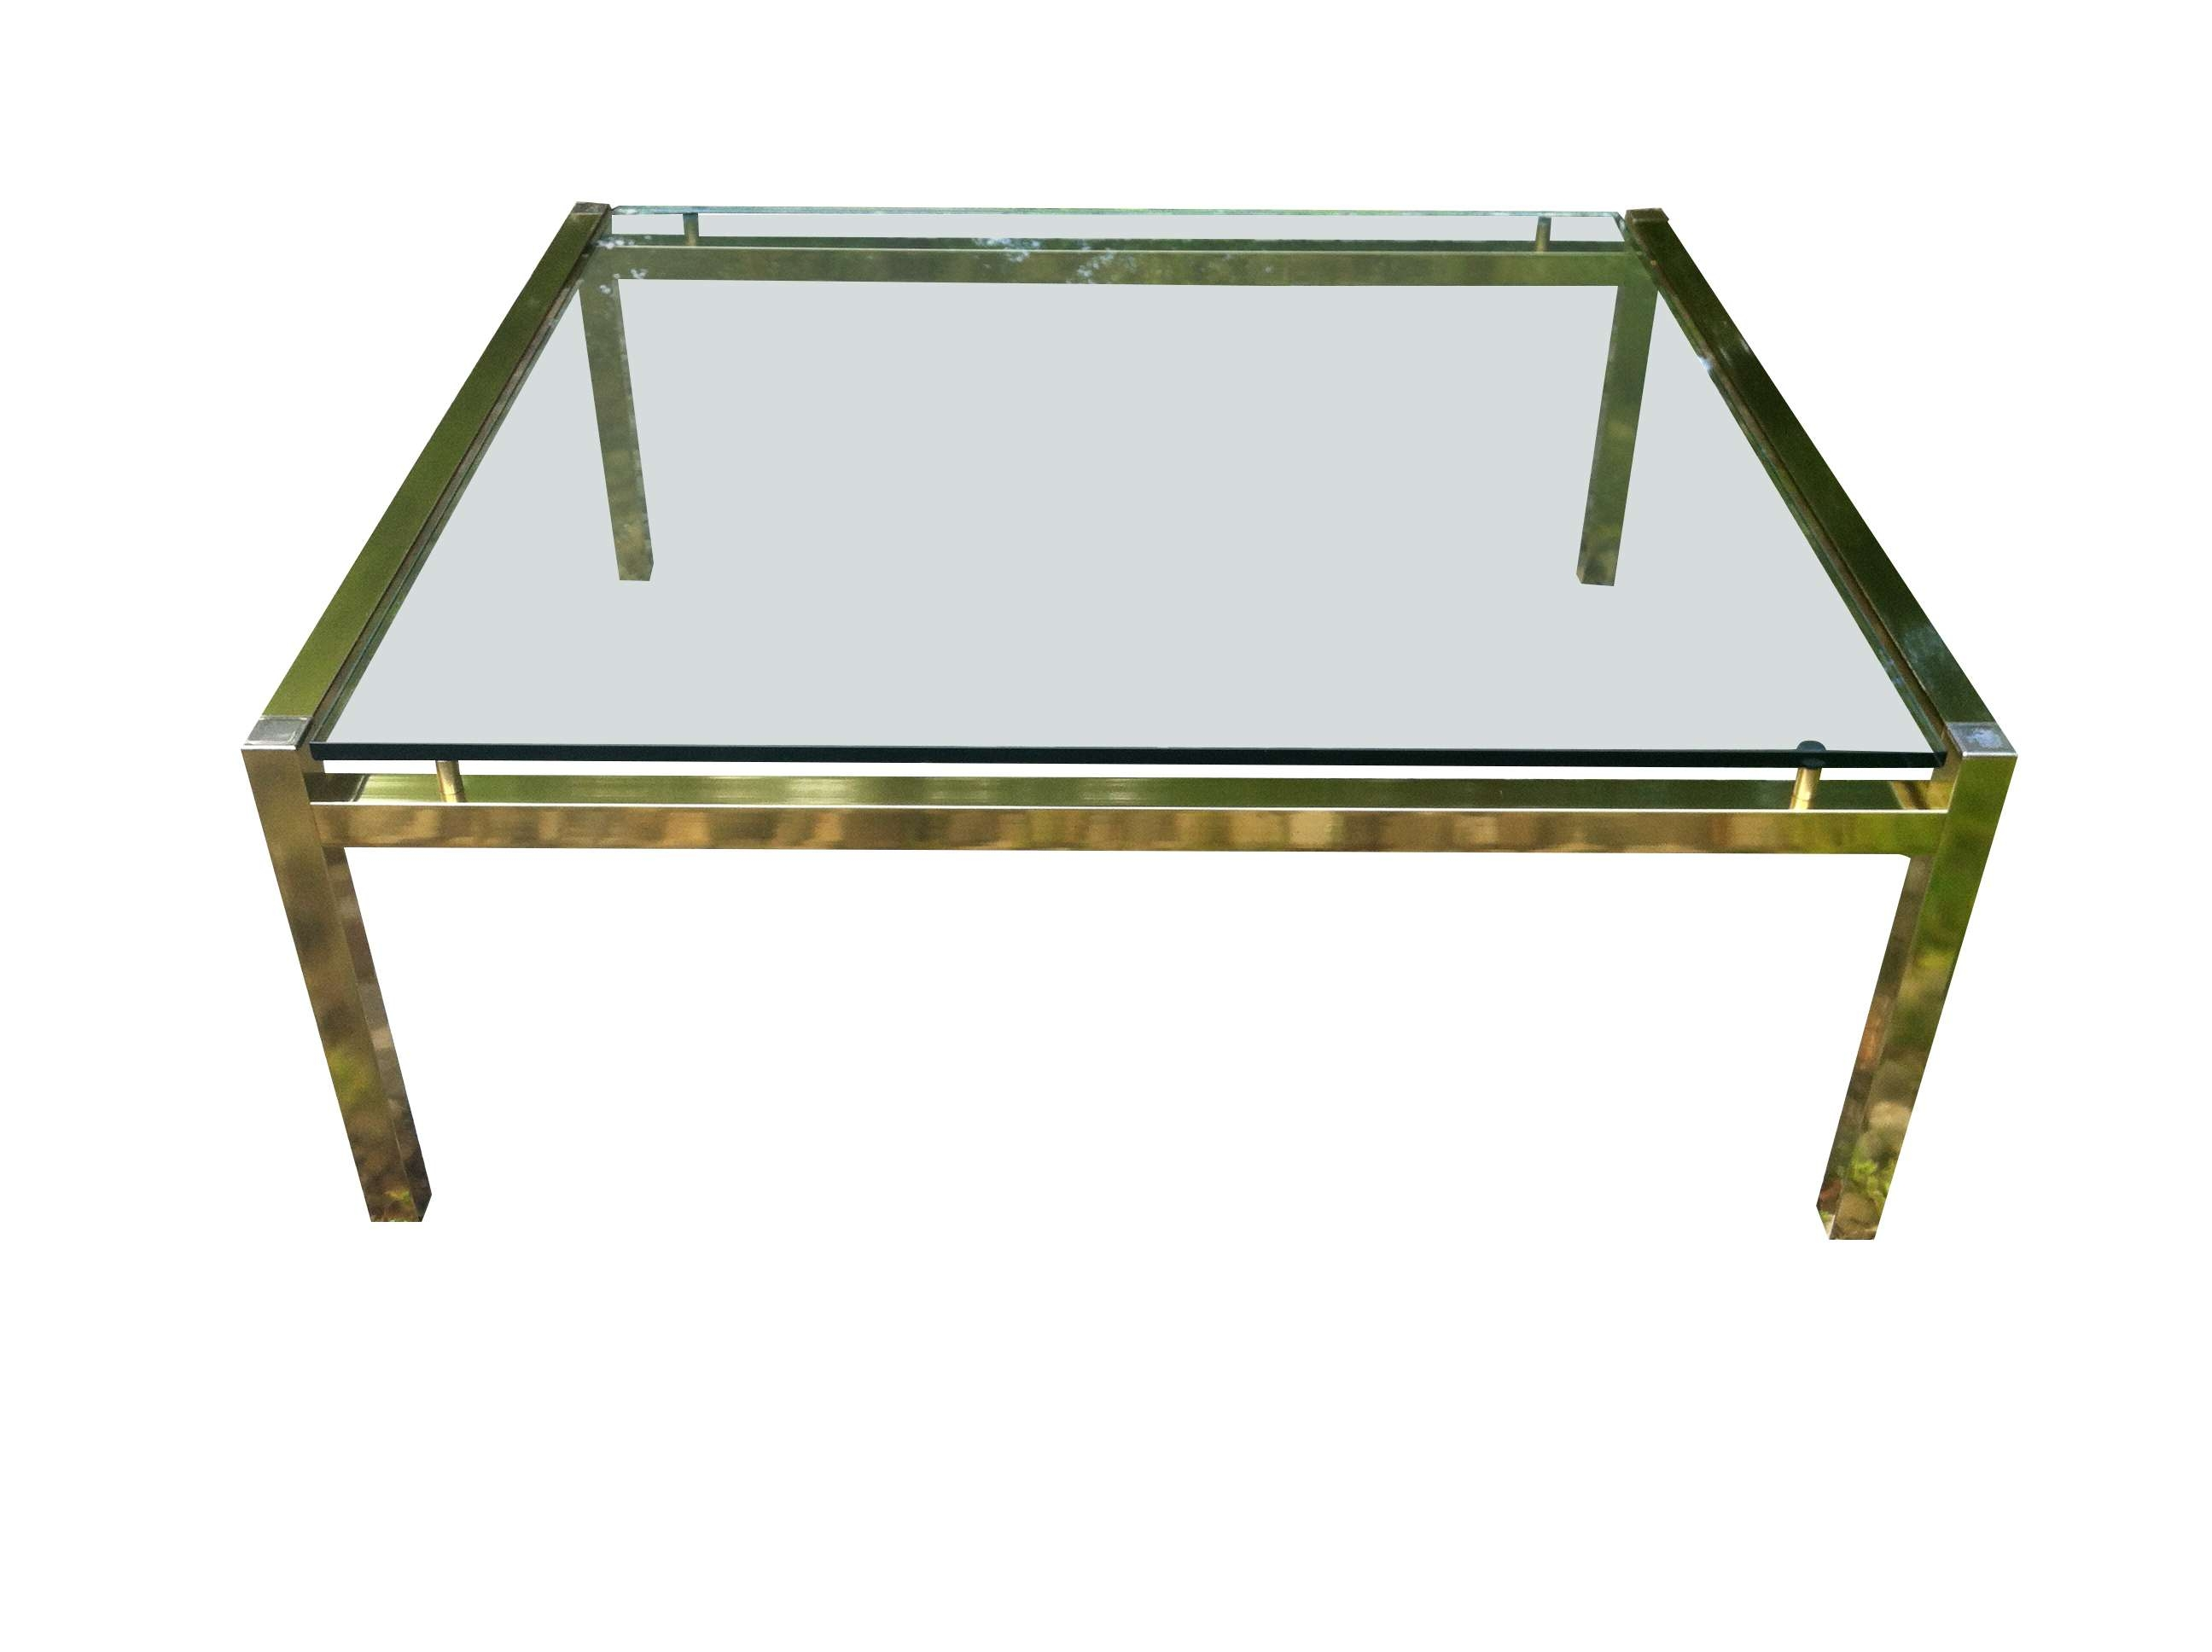 Omero Home Intended For Most Popular Floating Glass Coffee Tables (View 2 of 20)